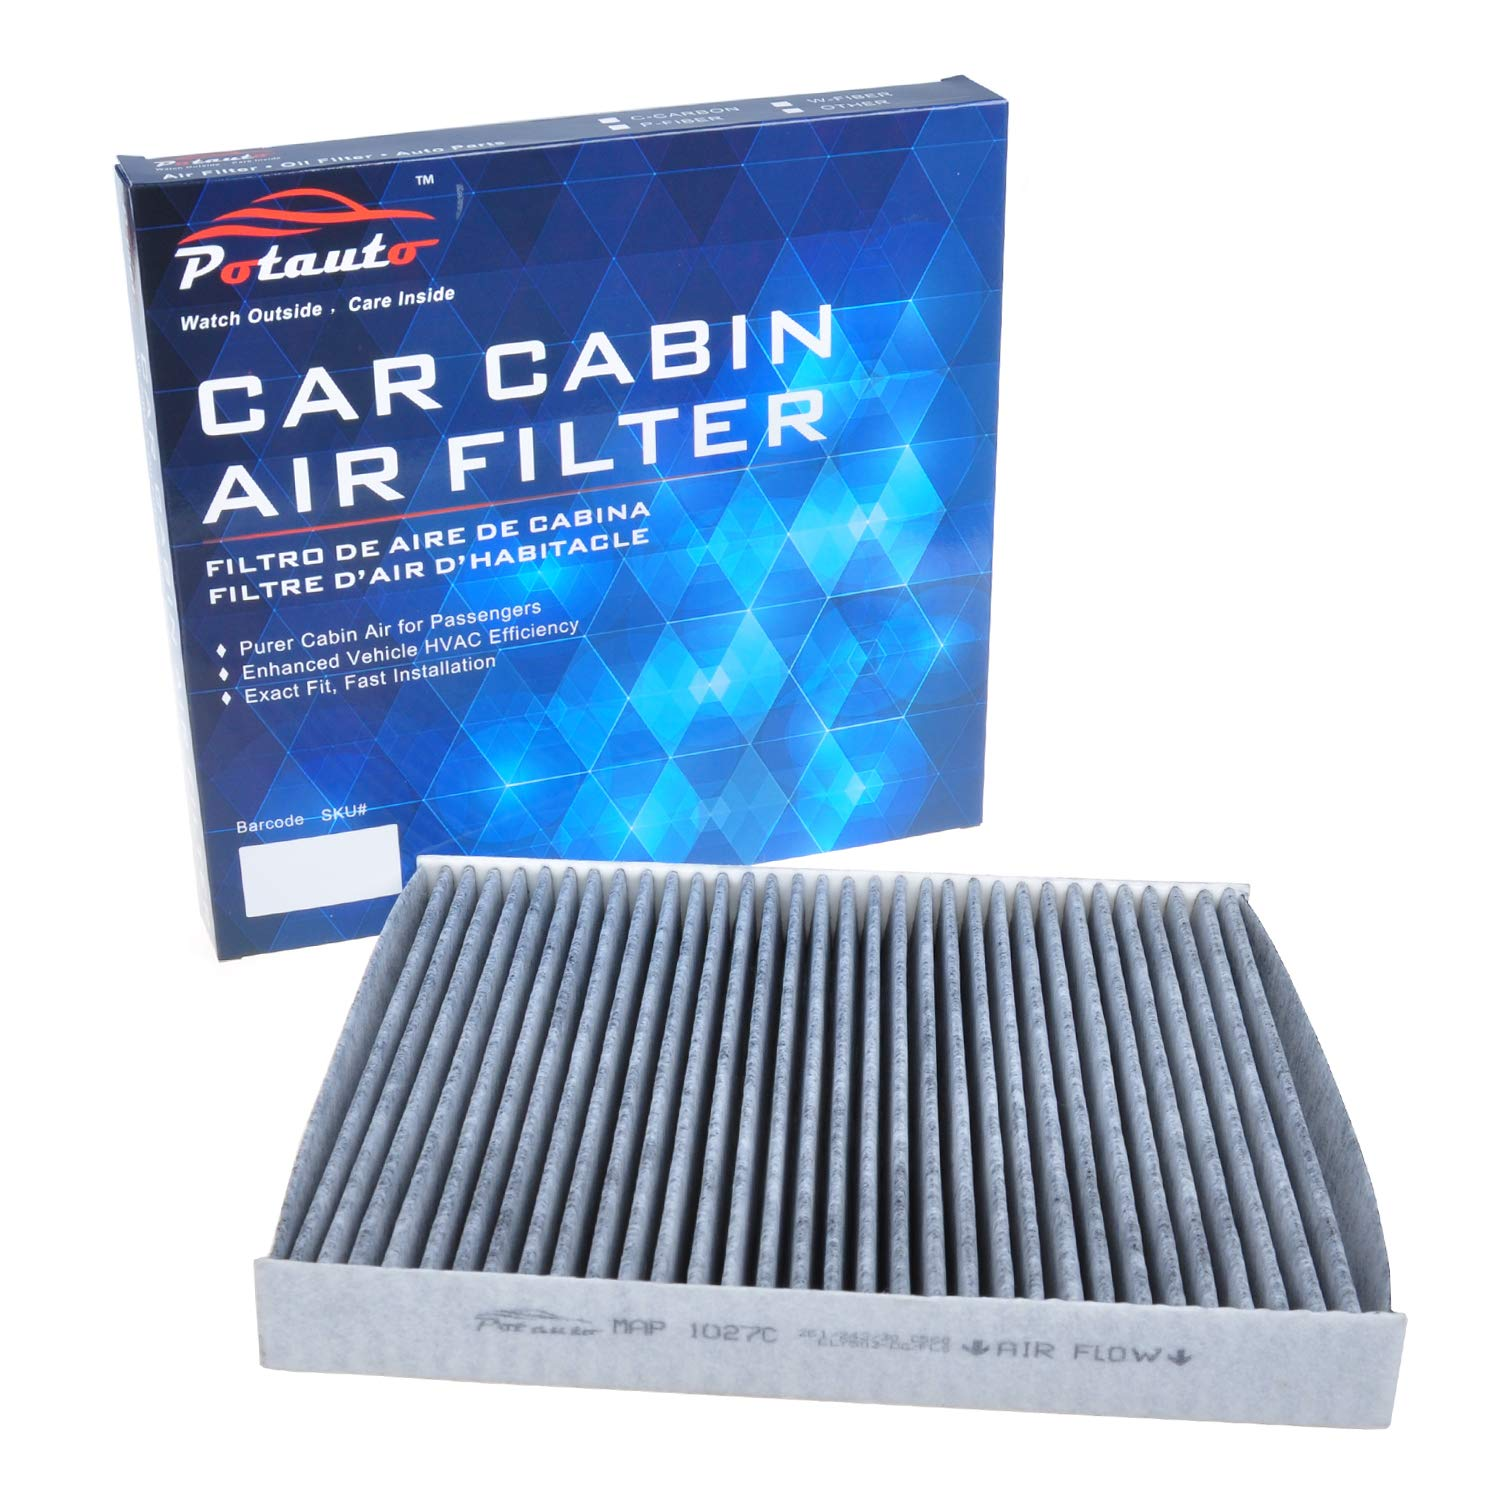 POTAUTO MAP 1027C Replacement Activated Carbon Car Cabin Air Filter for DODGE CF11183 Grand Cherokee JEEP DODGE Durango